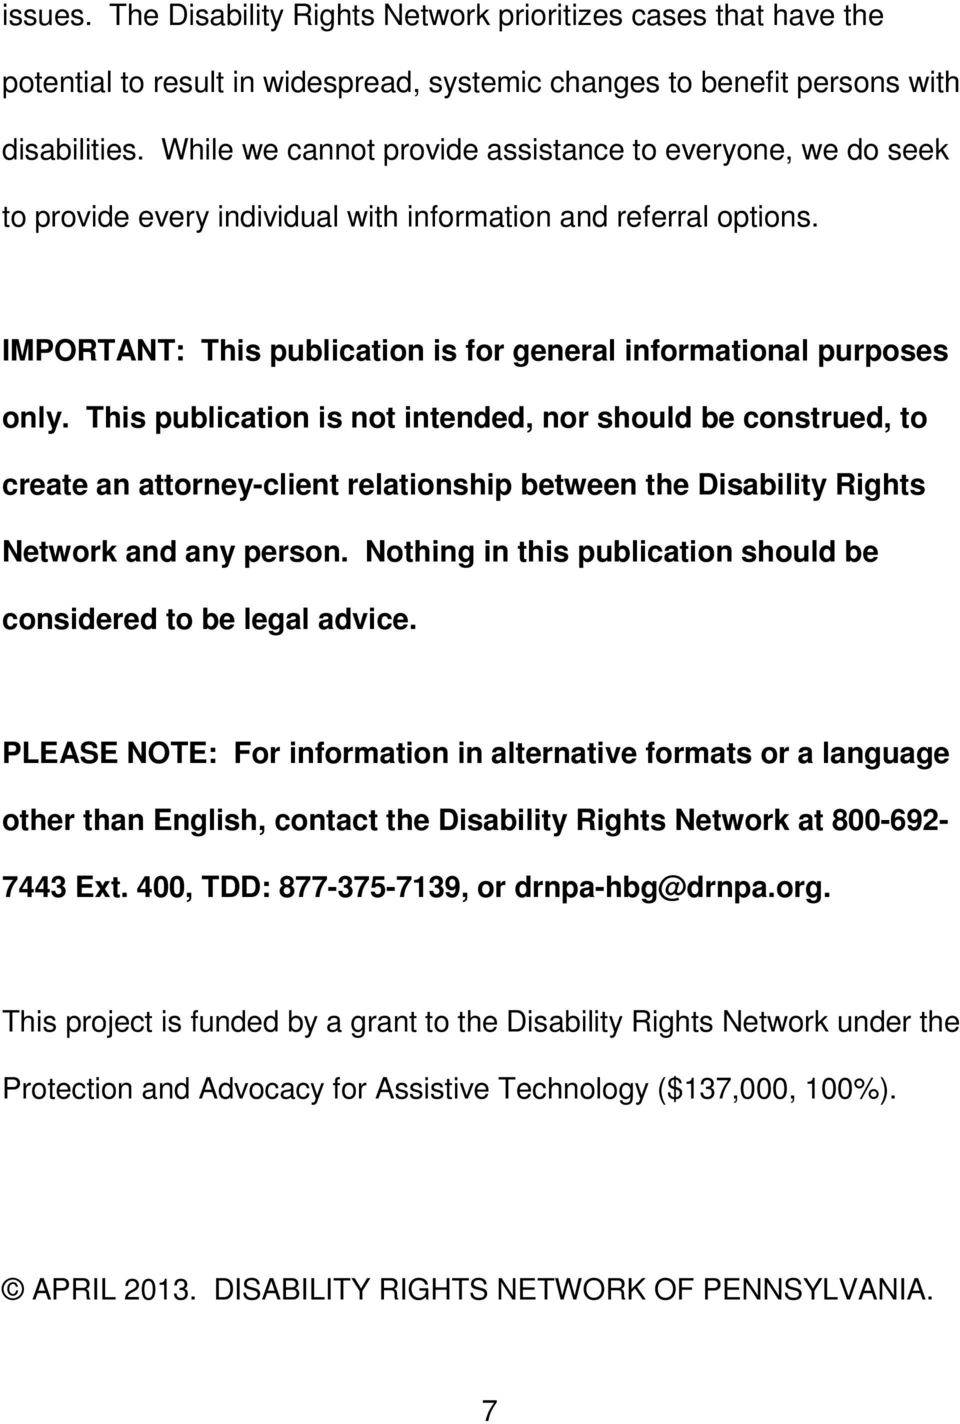 This publication is not intended, nor should be construed, to create an attorney-client relationship between the Disability Rights Network and any person.